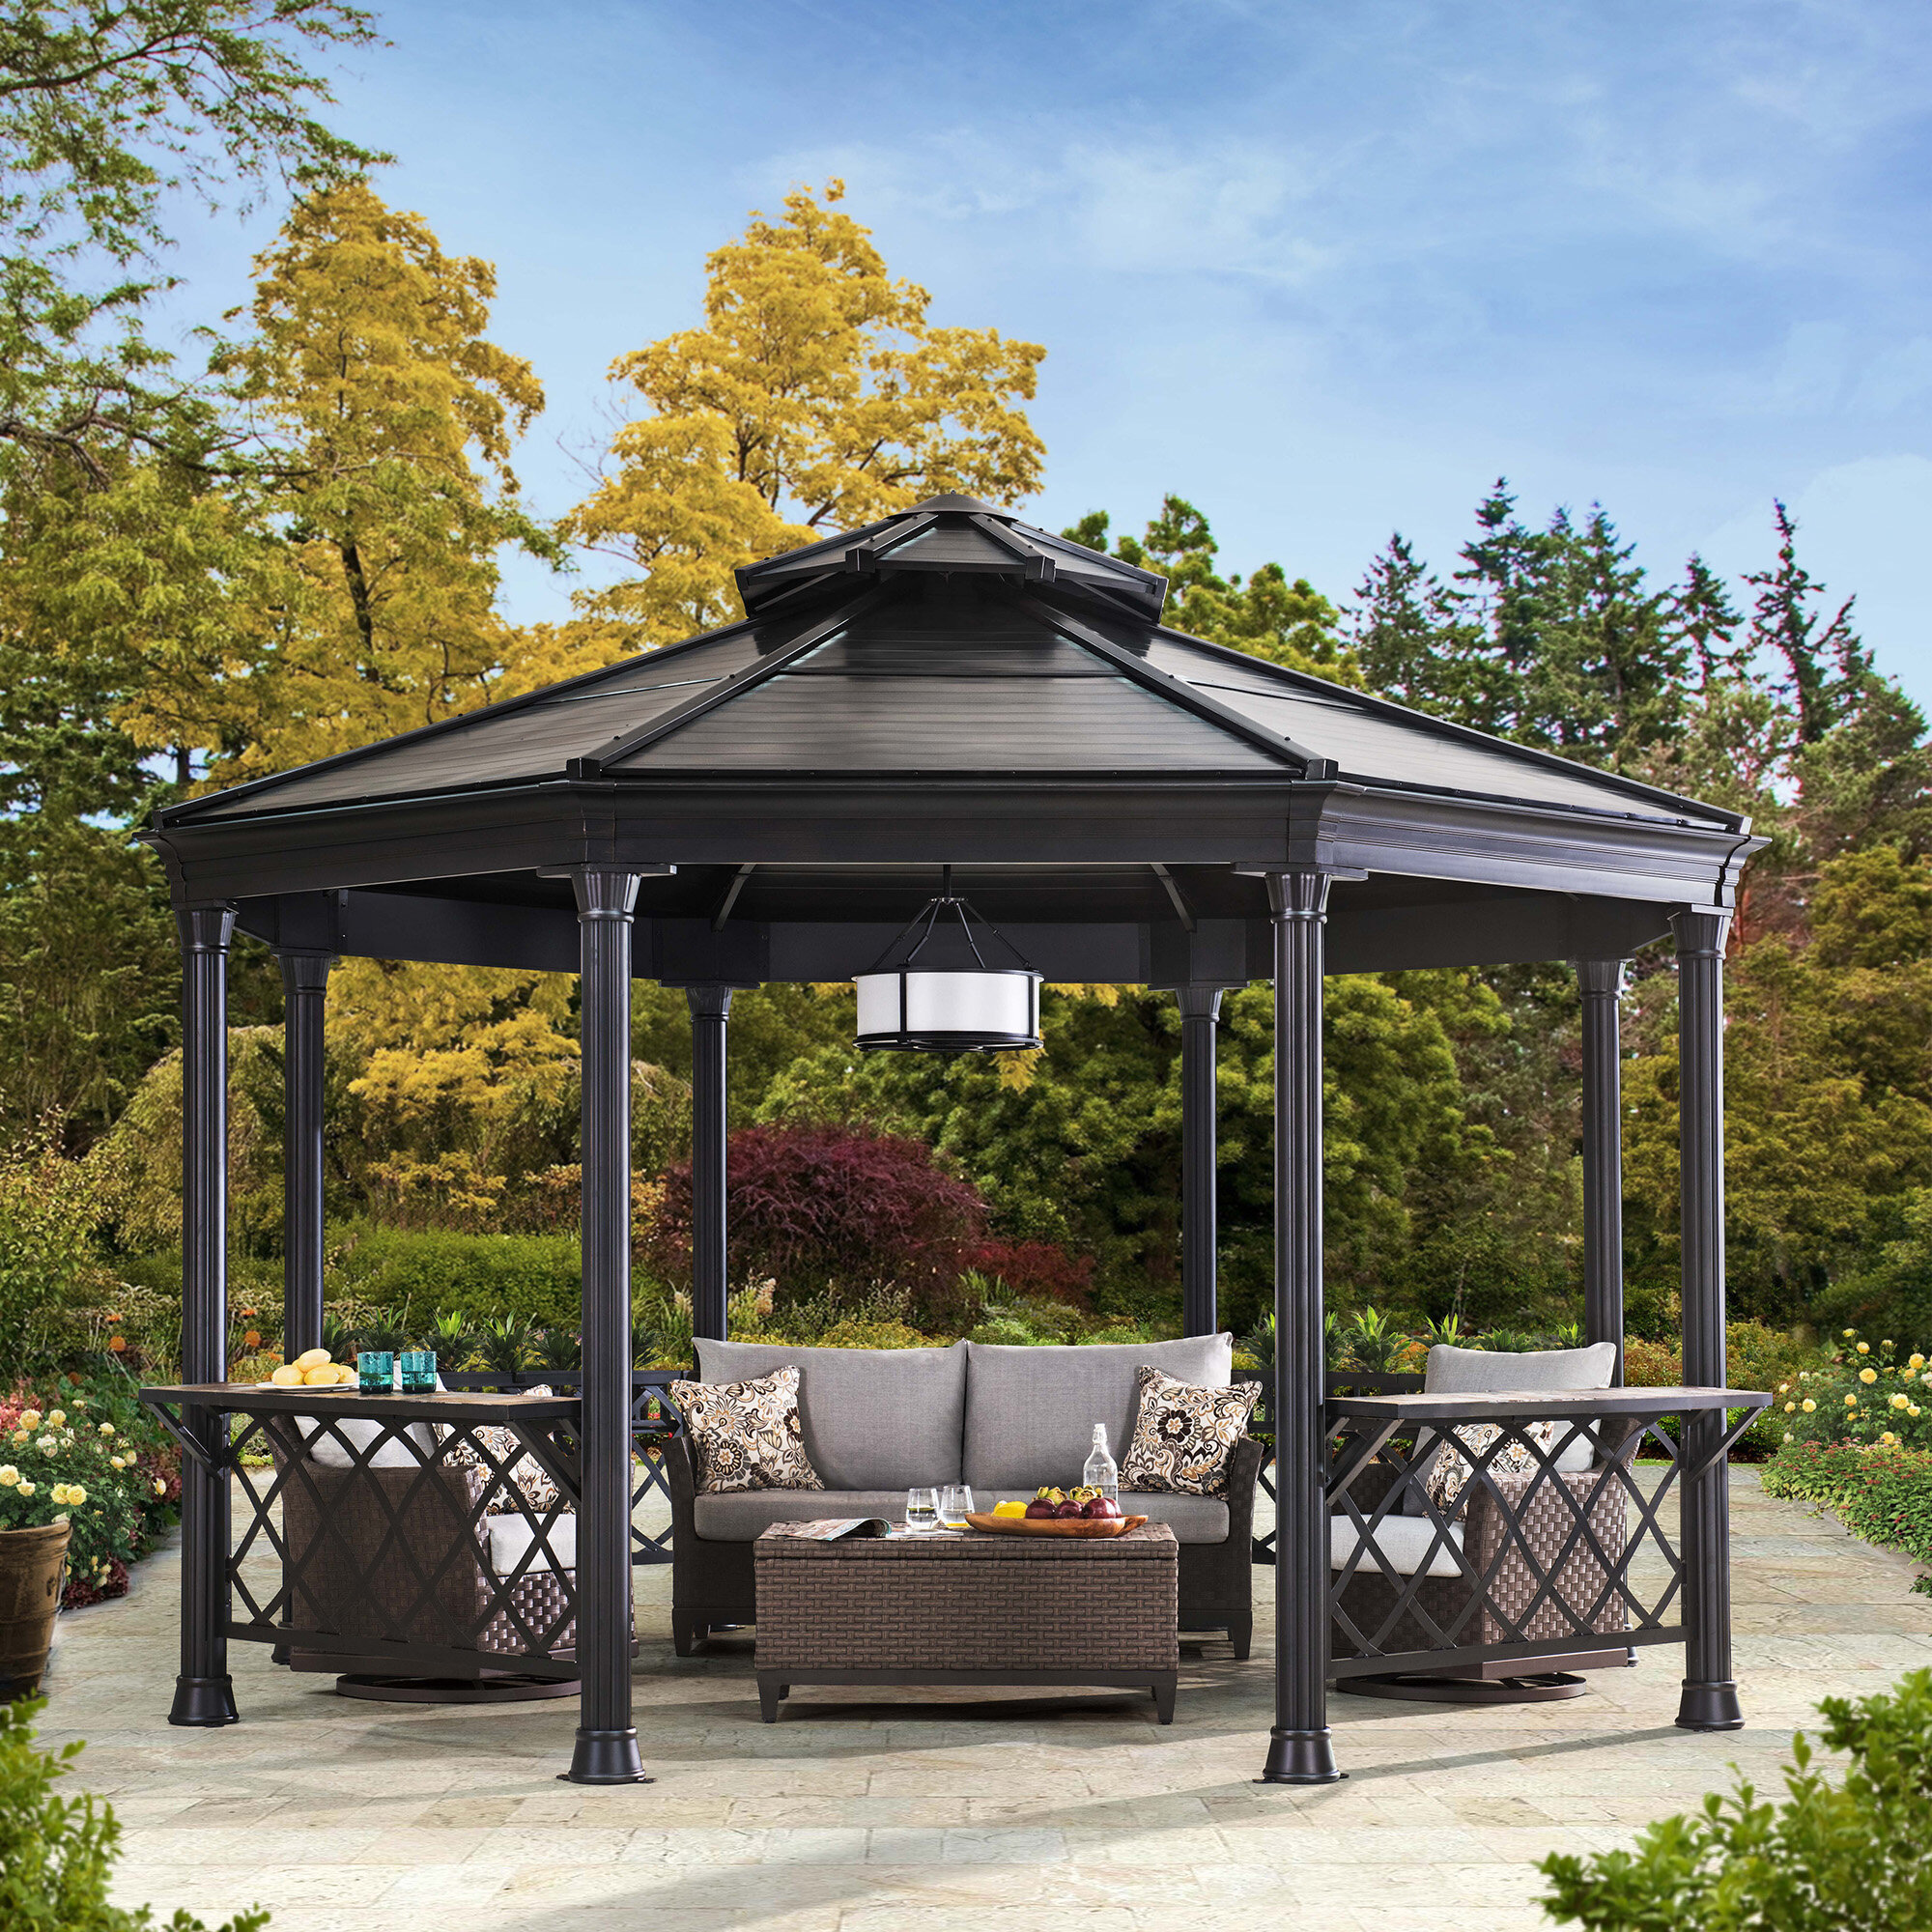 Charmant Sunjoy Circlet 14 Ft. W X 13 Ft. D Metal Patio Gazebo | Wayfair